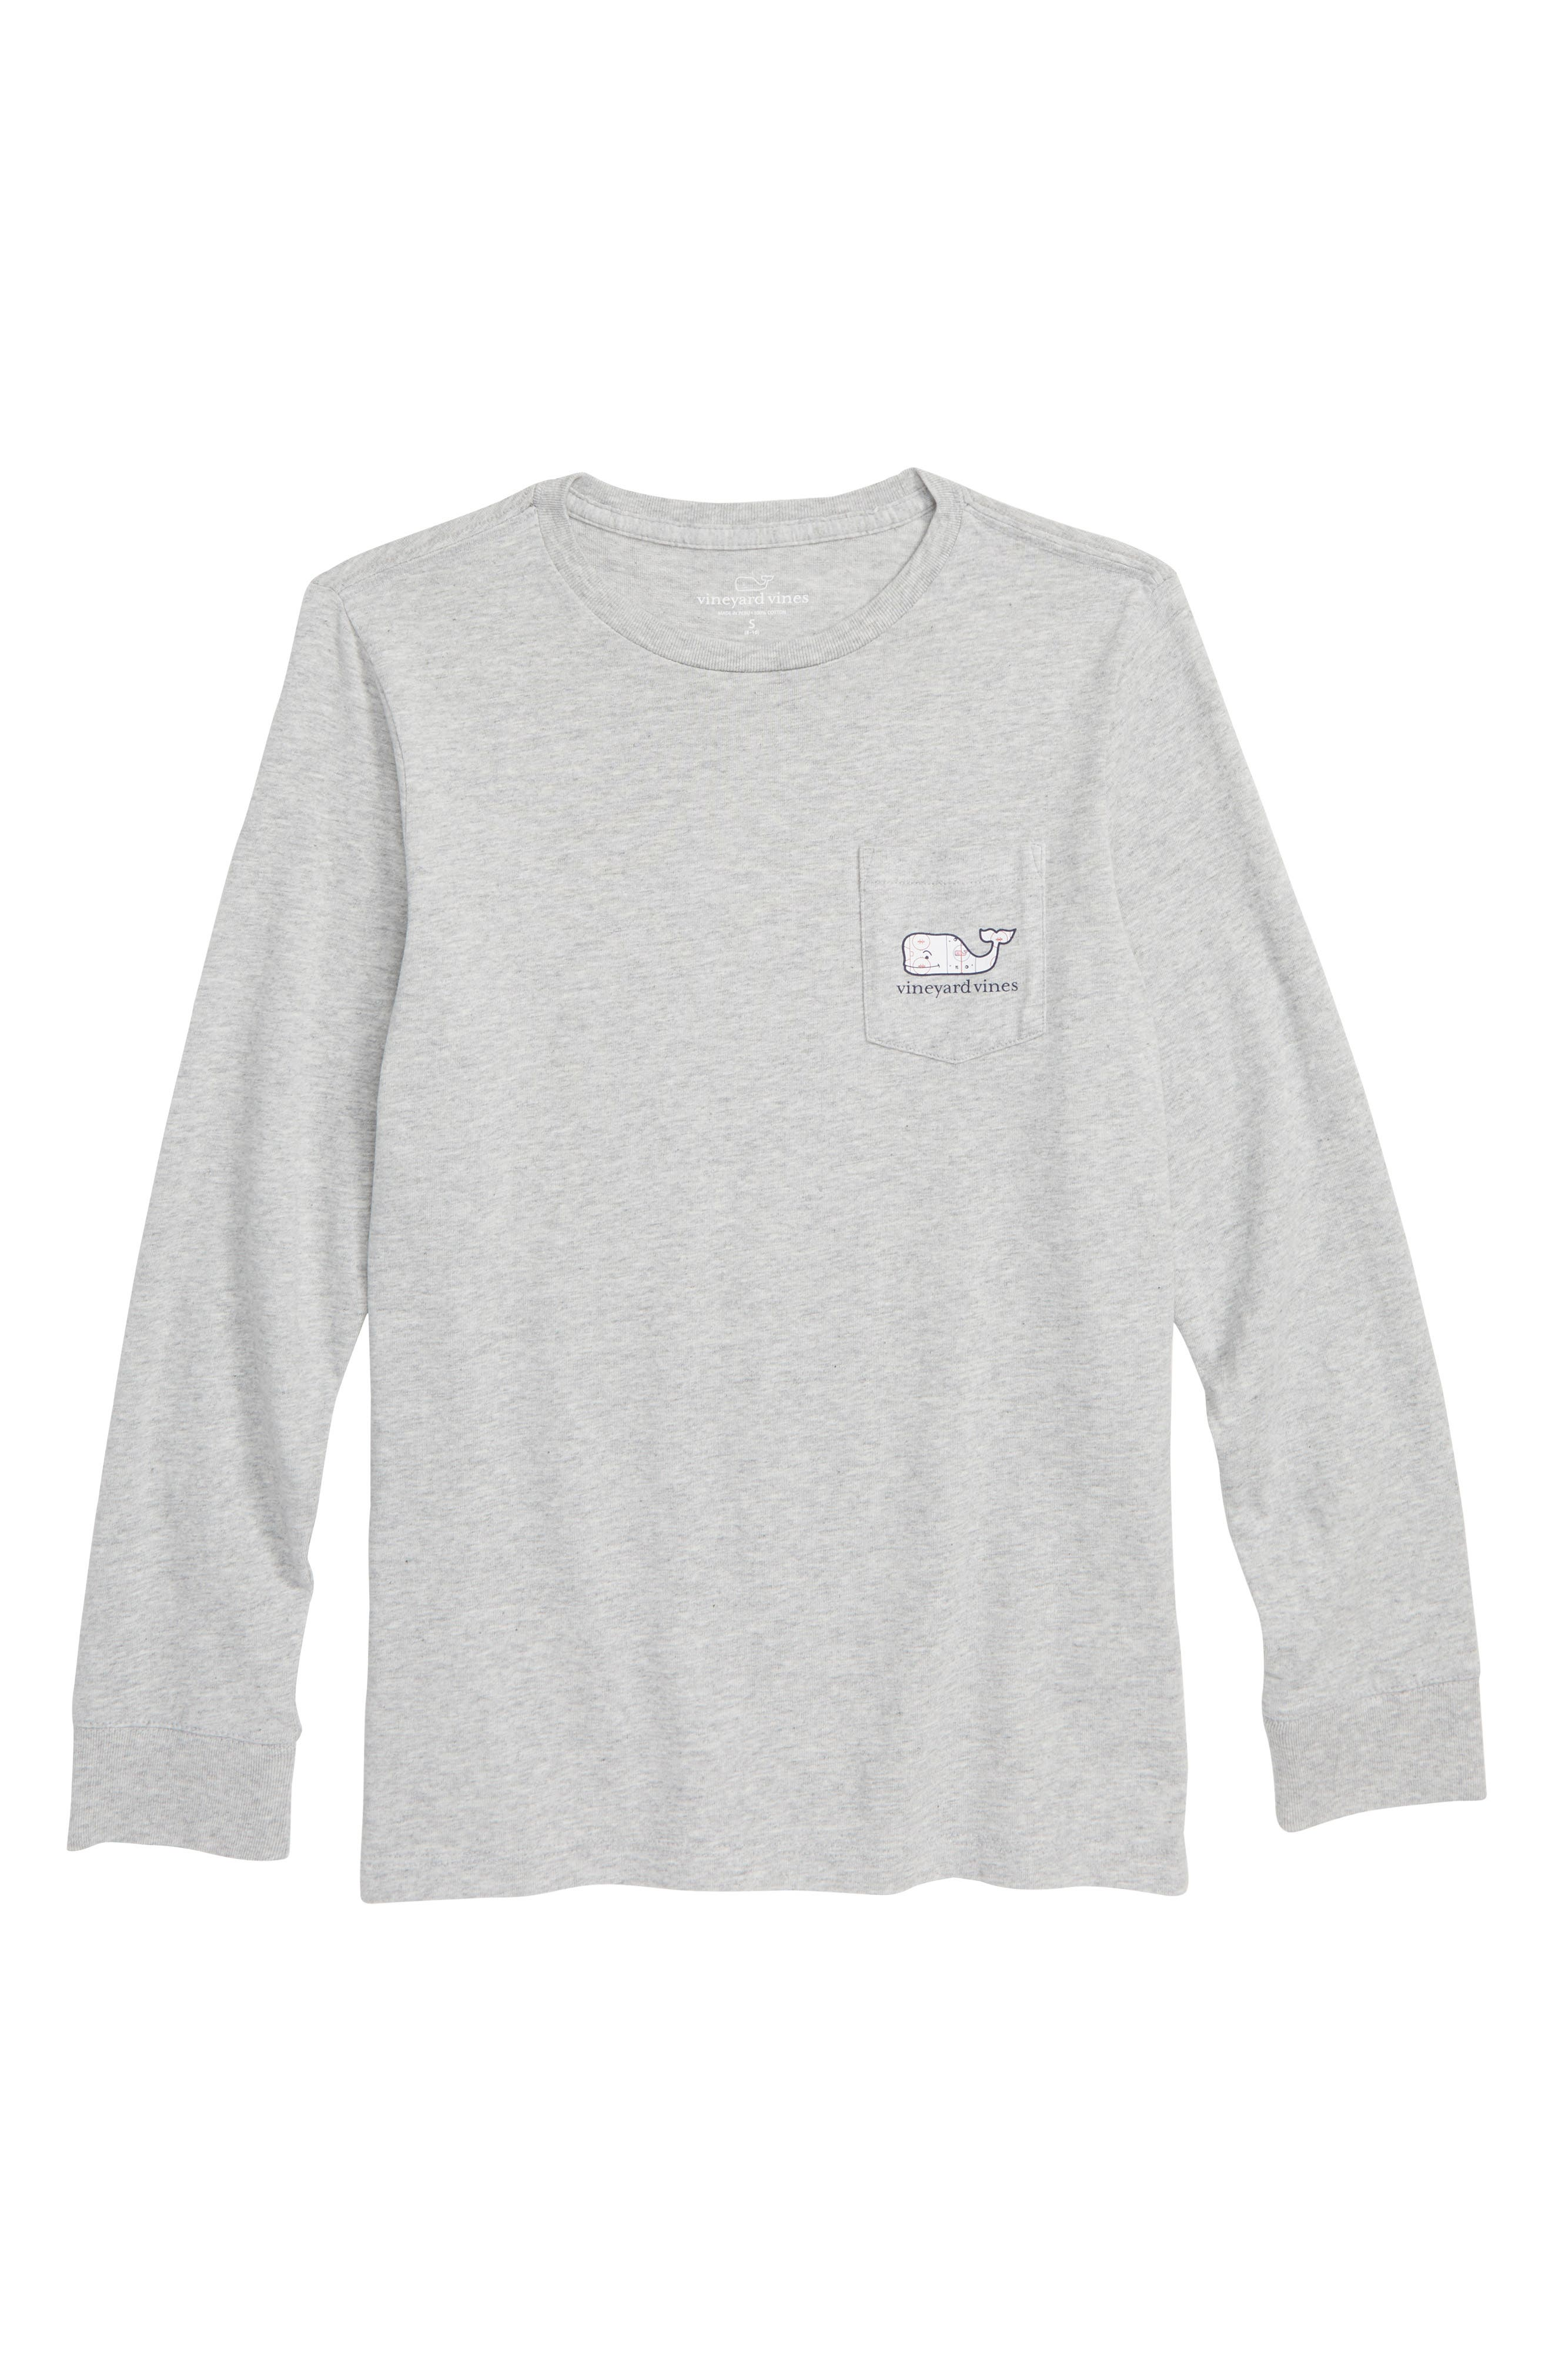 VINEYARD VINES Hockey Rink Whale Long Sleeve T-Shirt, Main, color, 039